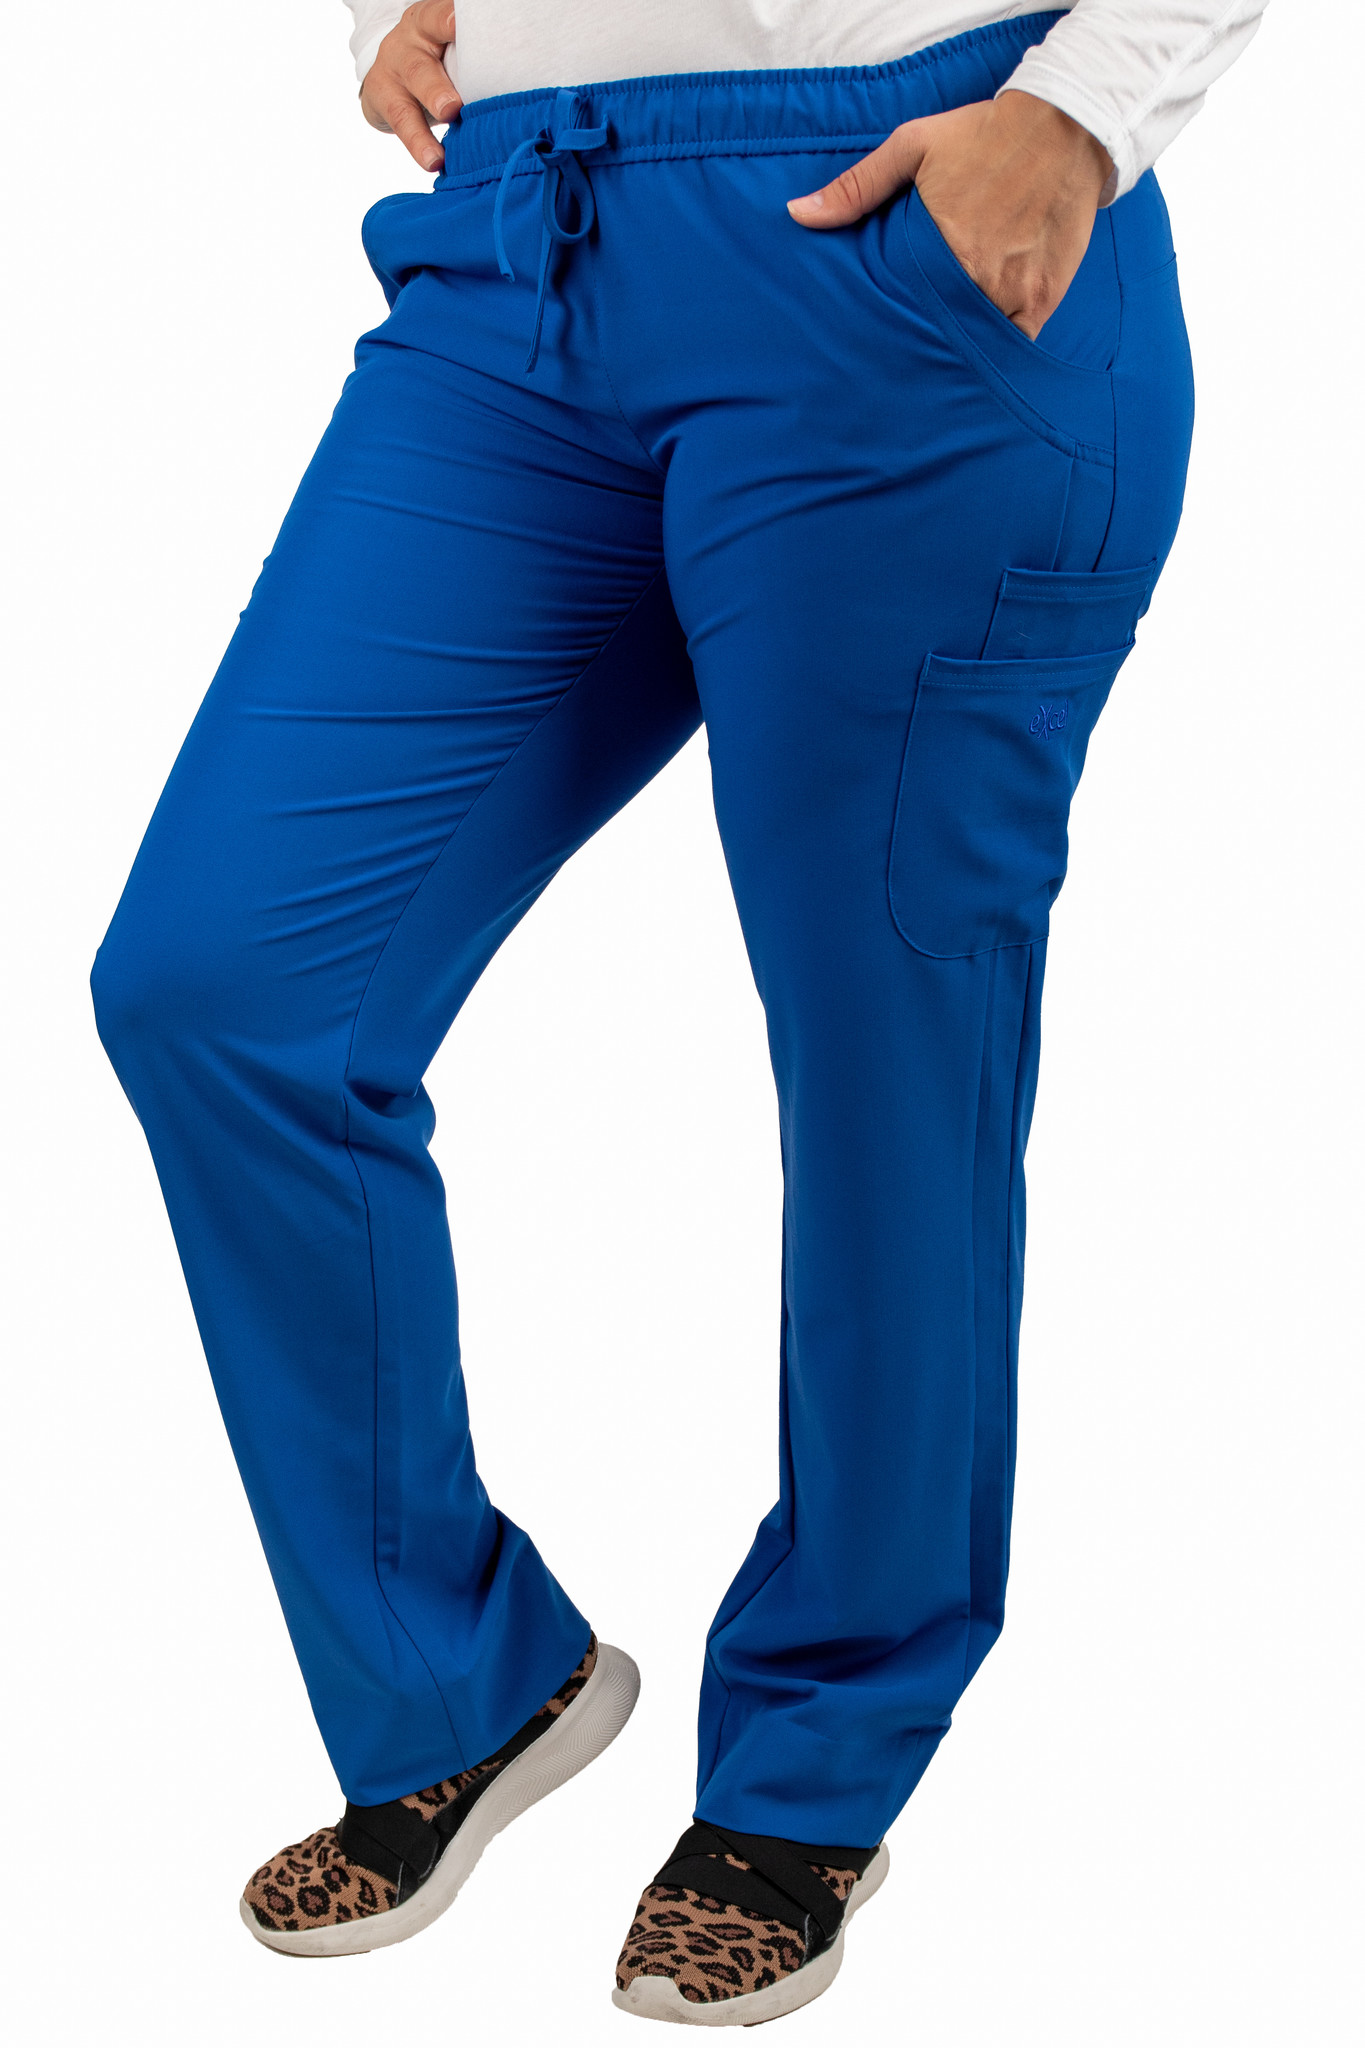 Royal Blue Women's Drawstring Waistband Fitted Pants 960